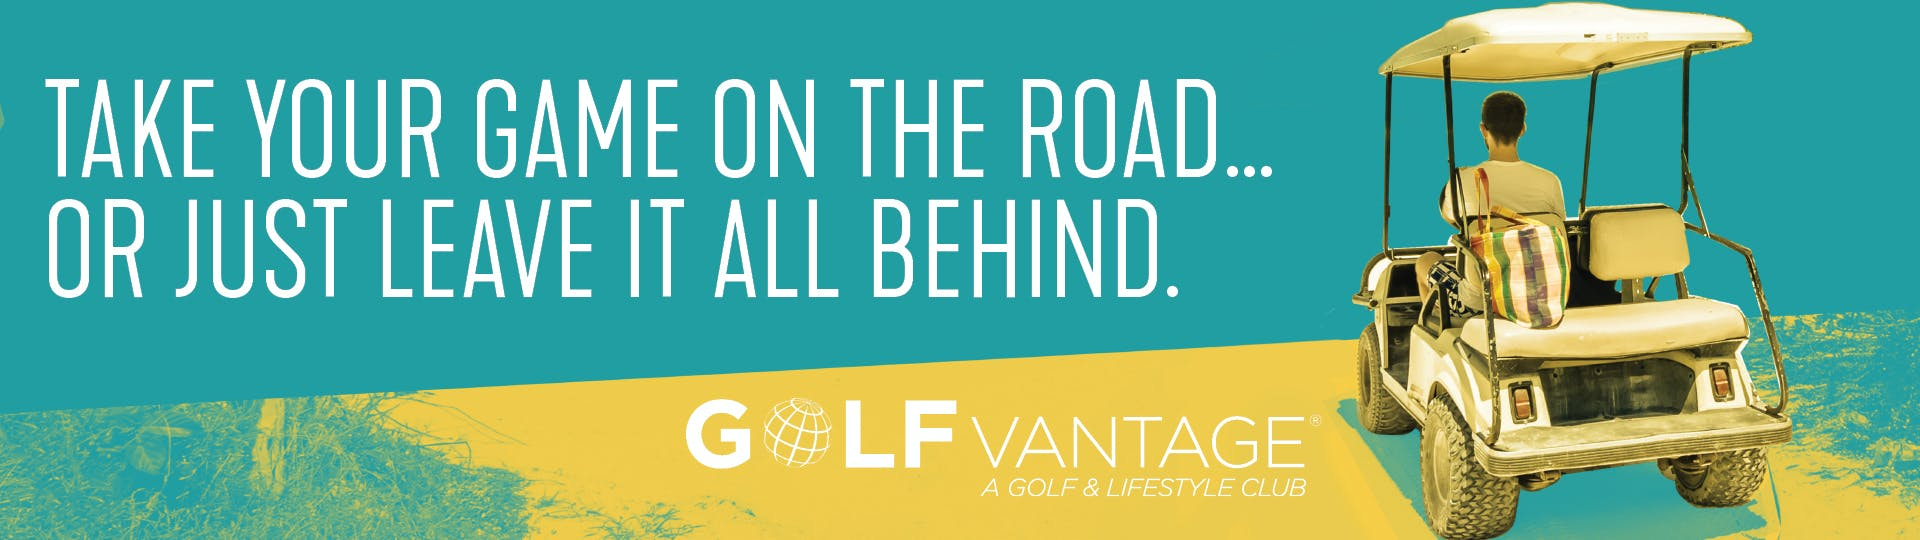 """Guy in a golf cart heading away from the camera. """"Take your game on the road...or just leave it all behind."""" GOLFvantage logo."""